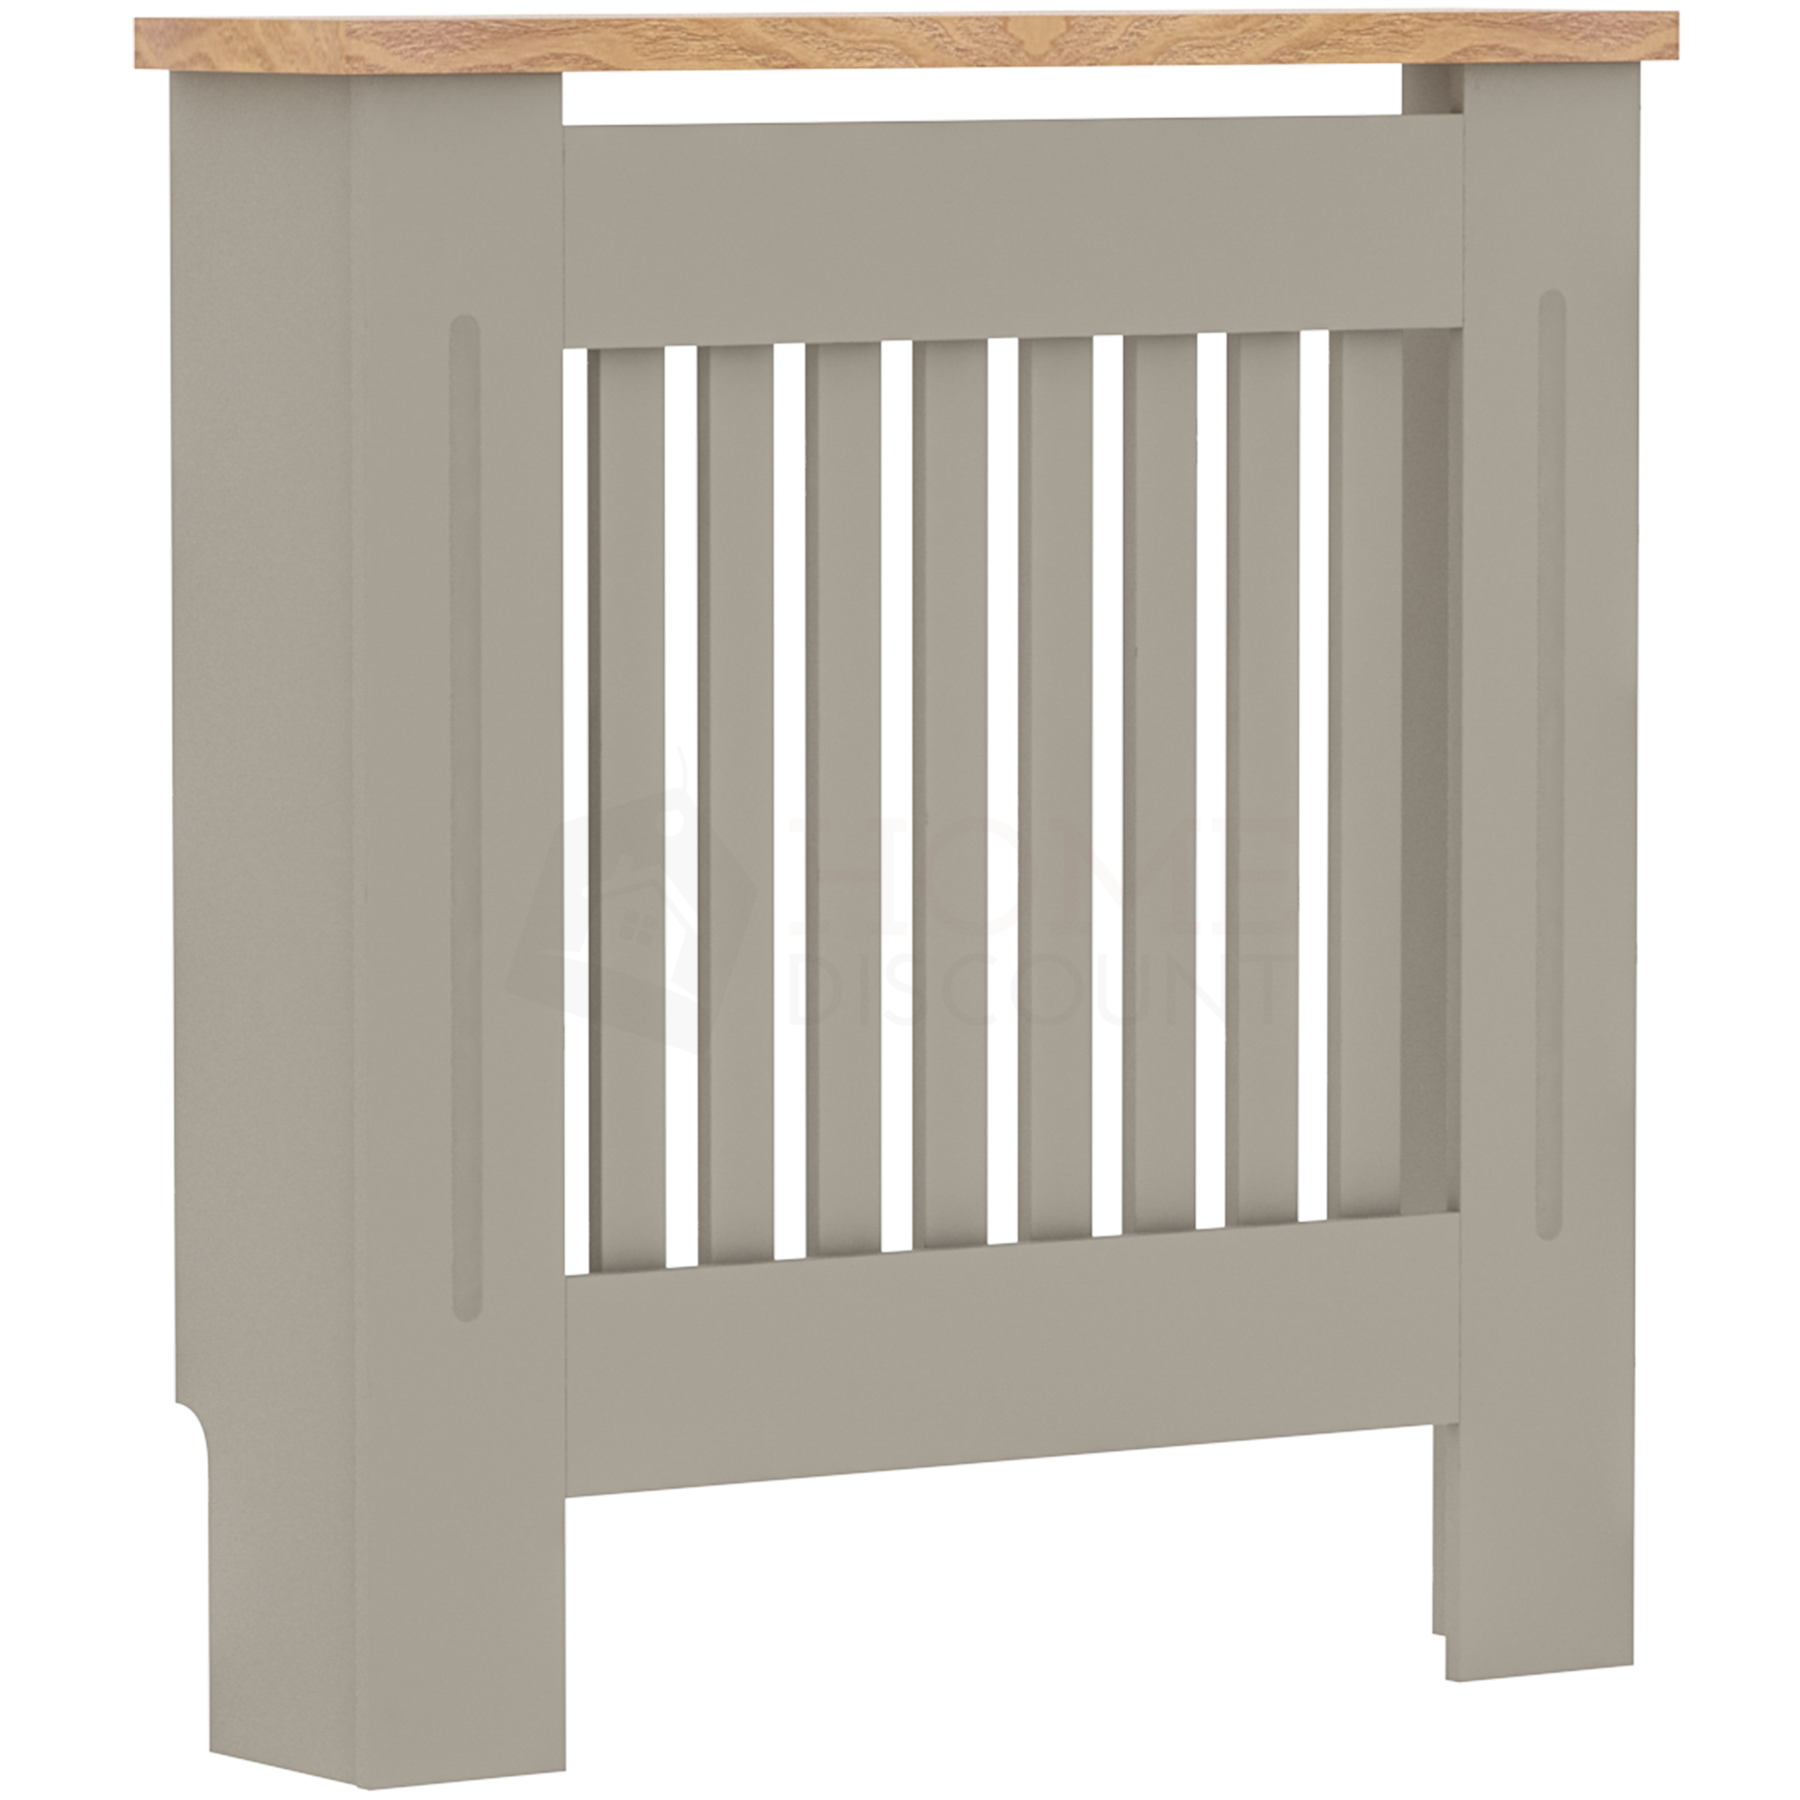 Radiateur-Housse-Blanc-inachevee-MODERNE-BOIS-TRADITIONNELLE-Grill-cabinet-furniture miniature 41